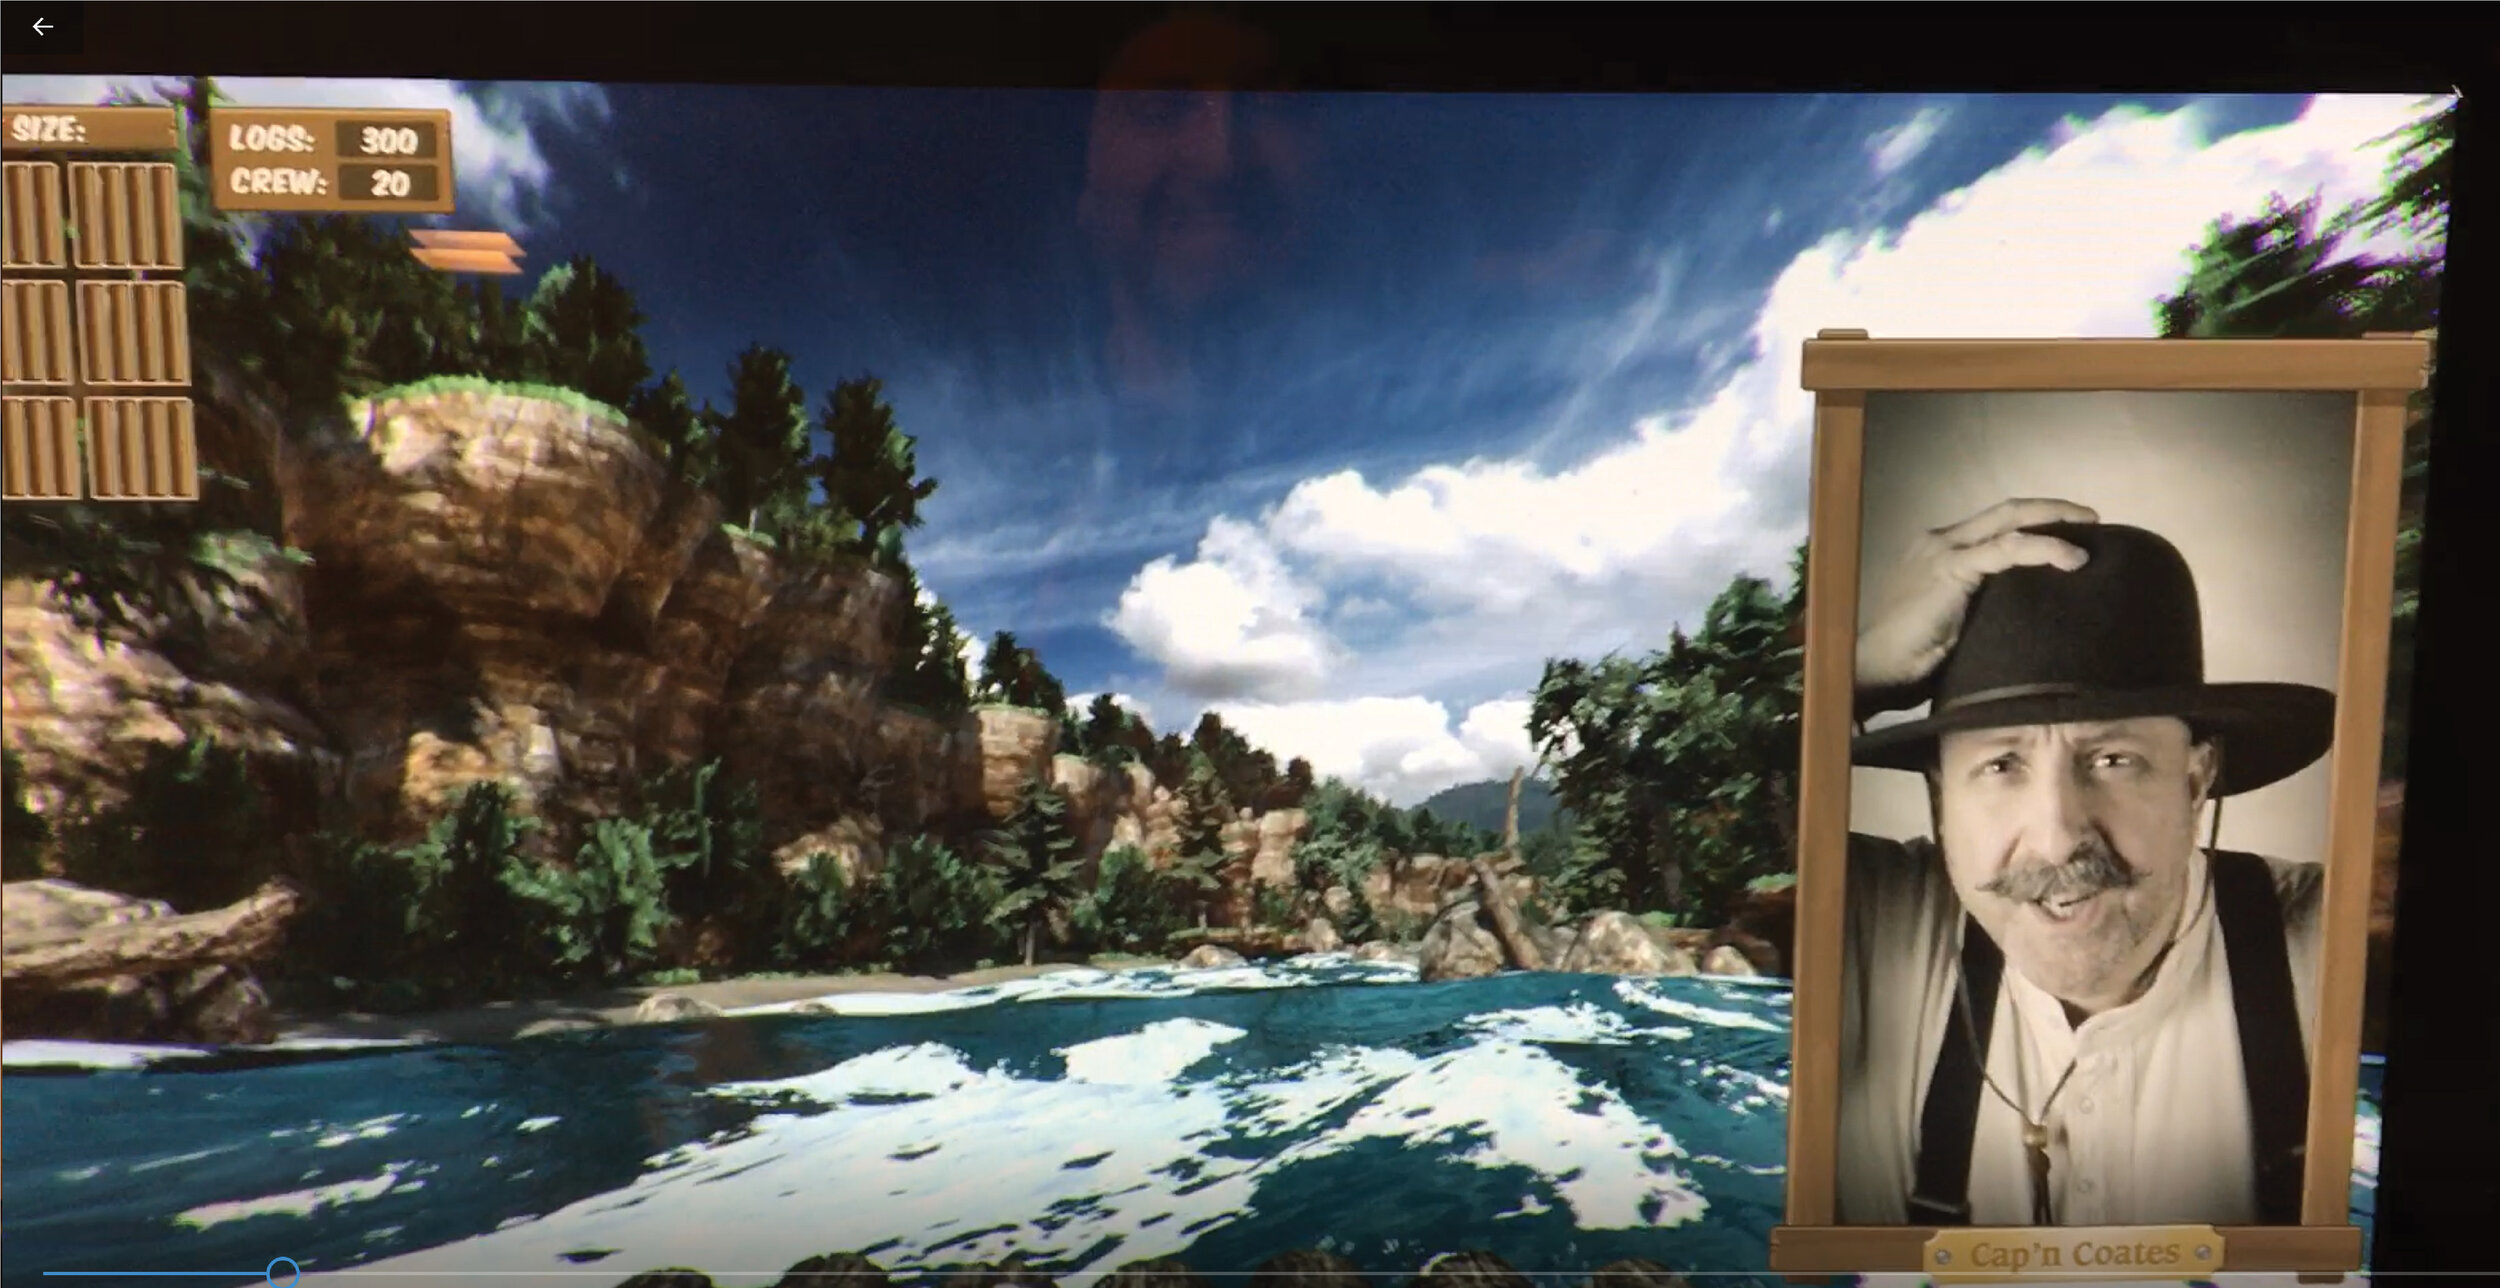 Log Raft Adventure Ride - Ride with Captain Coates down the churning Mississippi on a log raft, using oars to navigate the river. See how many logs you can deliver to the sawmill, while the you rise, sink and move with the water